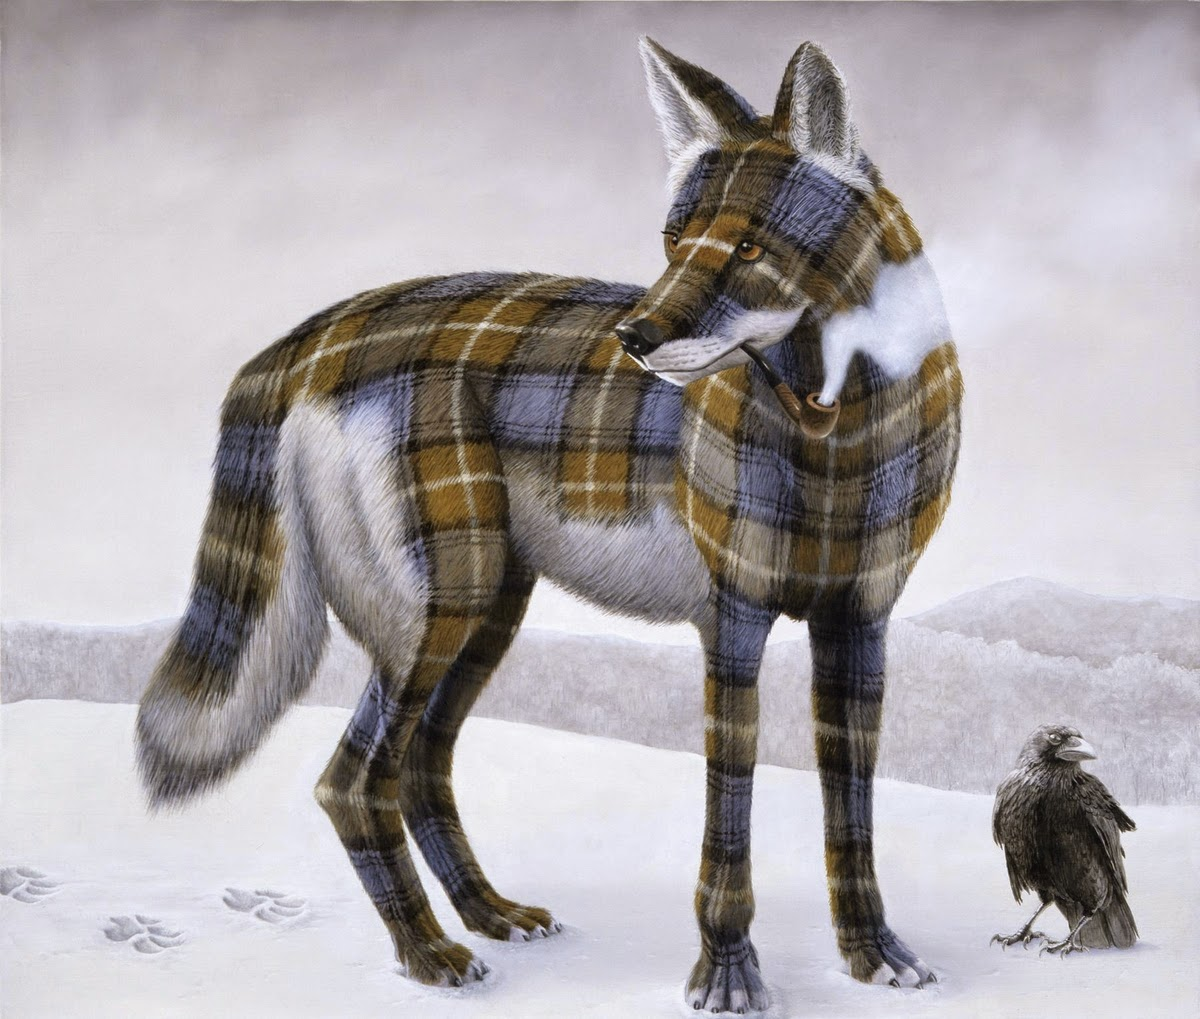 04-Sean-Landers-Animals-Coat-of-paint-in-Place-of-a-Coat-of-Fur-Paintings-www-designstack-co